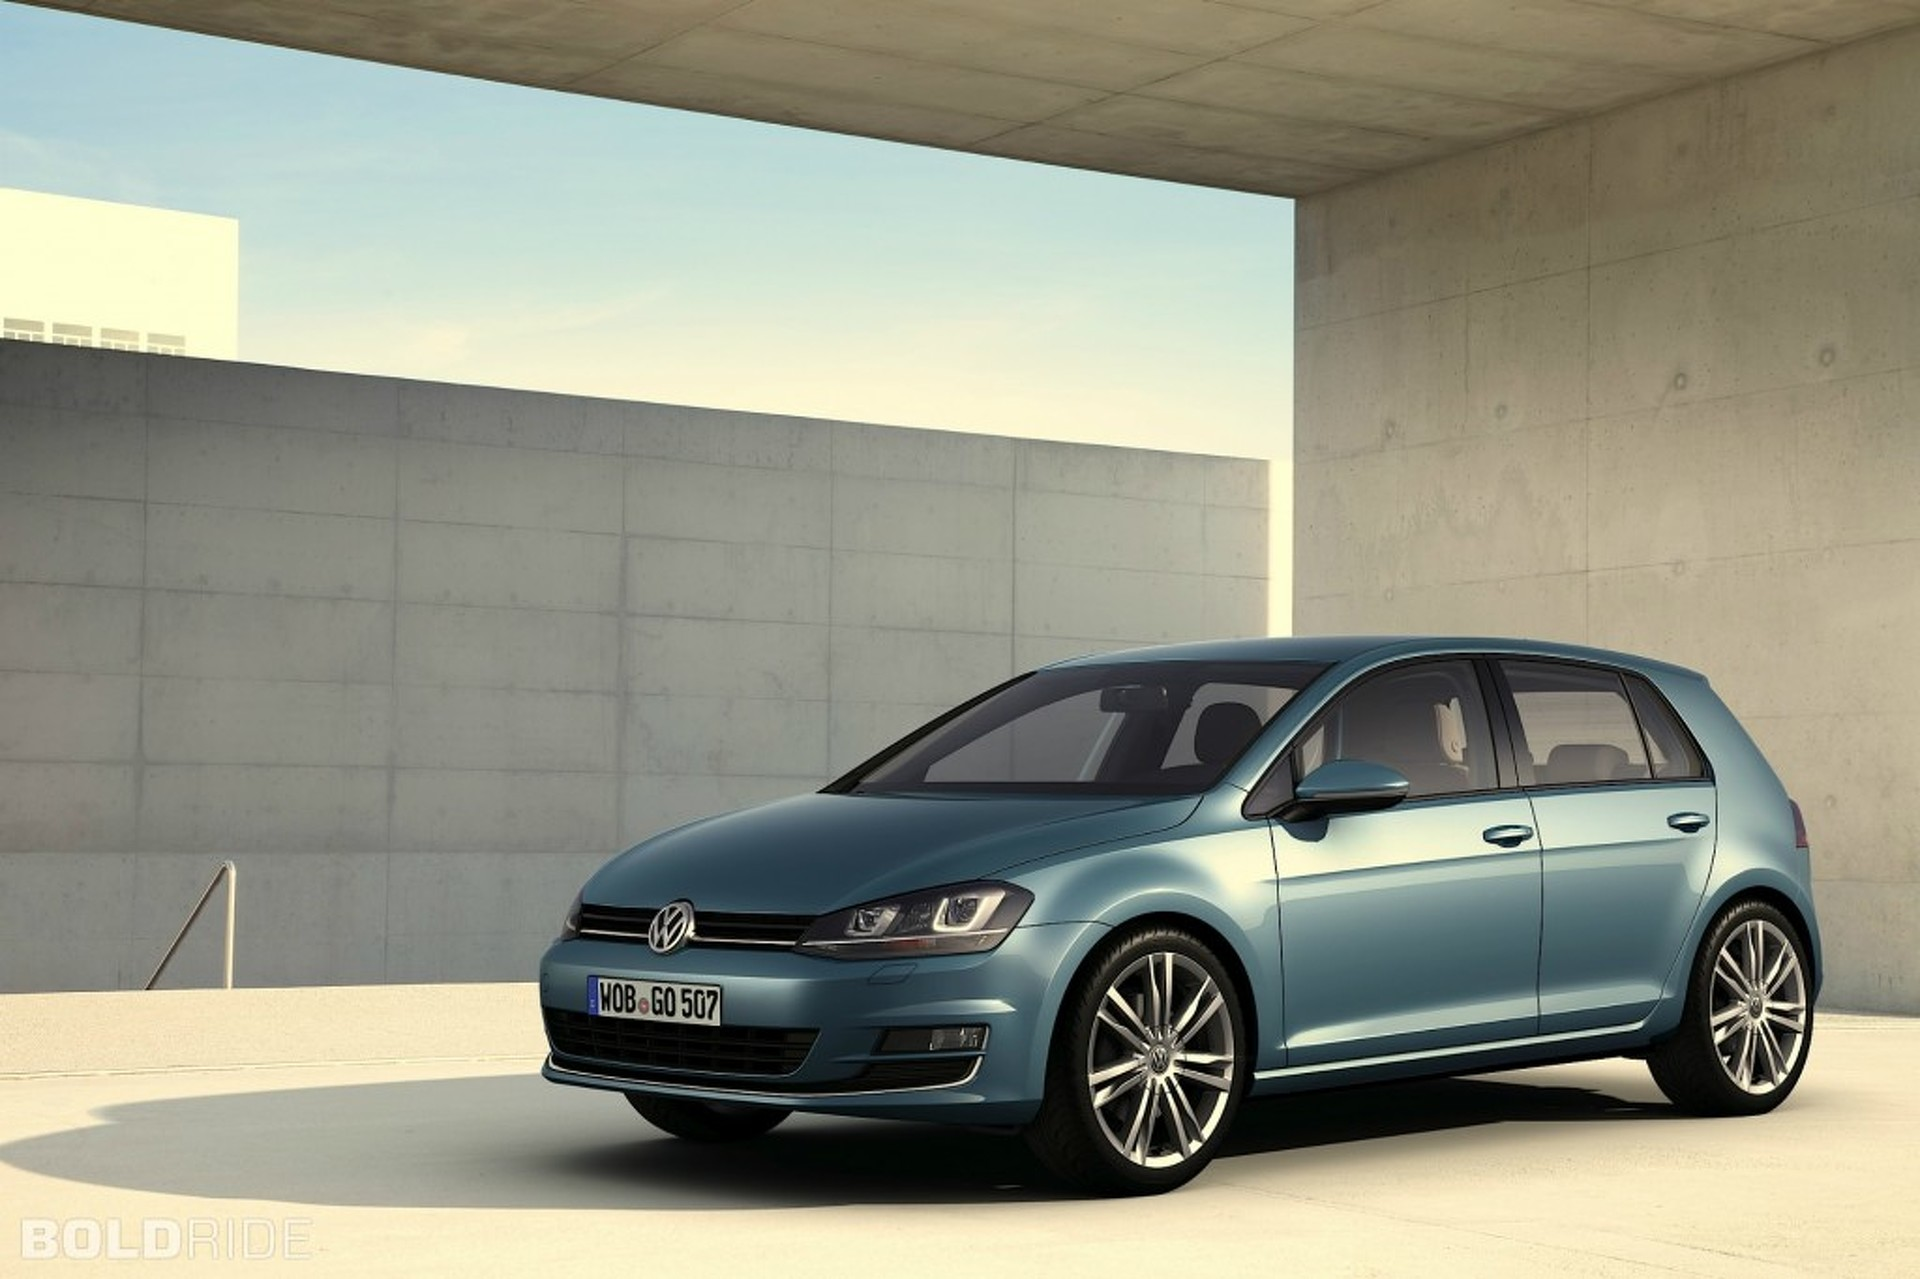 2012 Paris Motor Show: What to Expect in The City of Lights